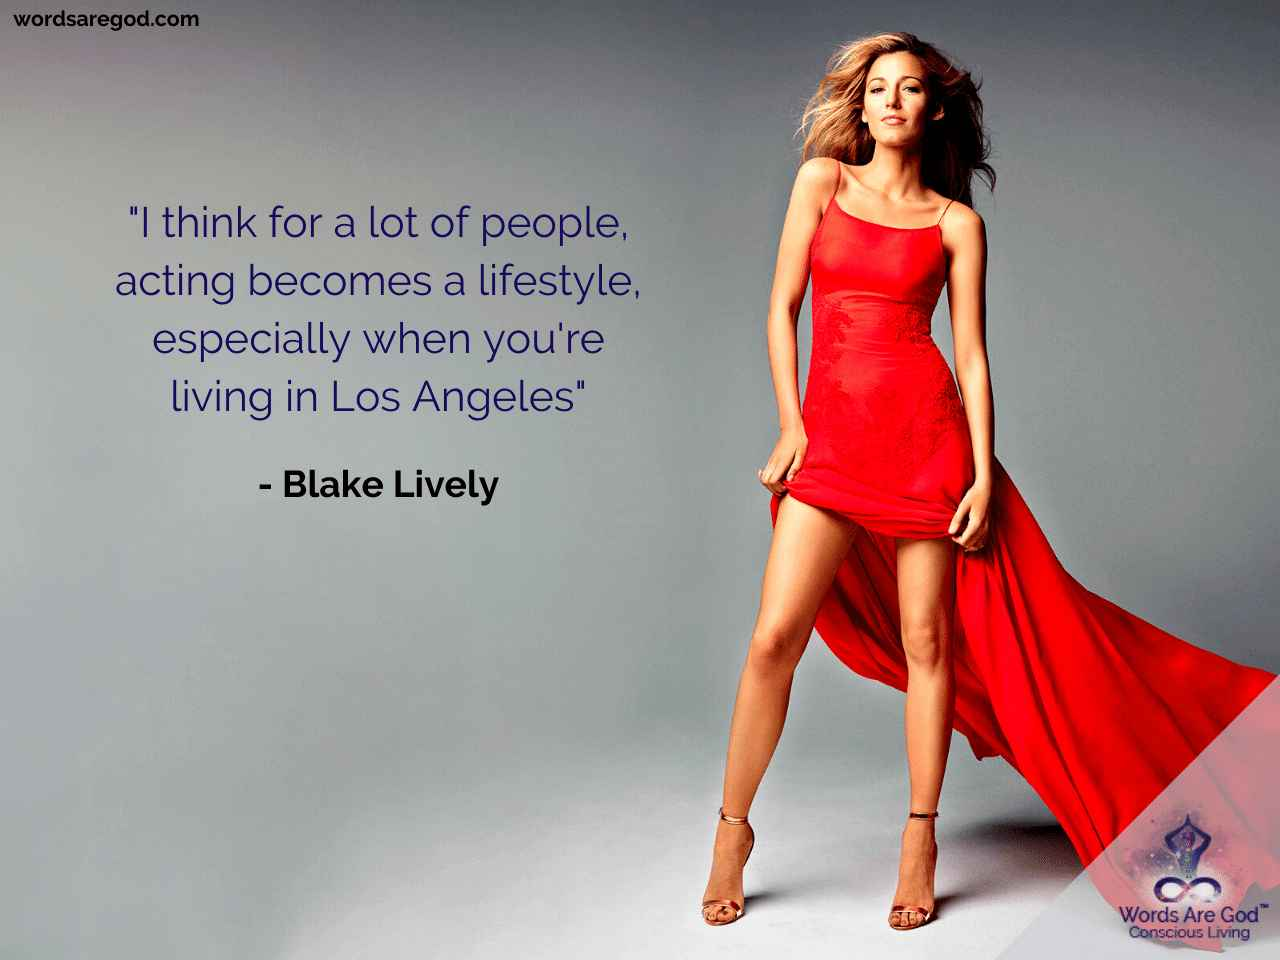 Blake Lively Inspirational Quote by Blake Lively